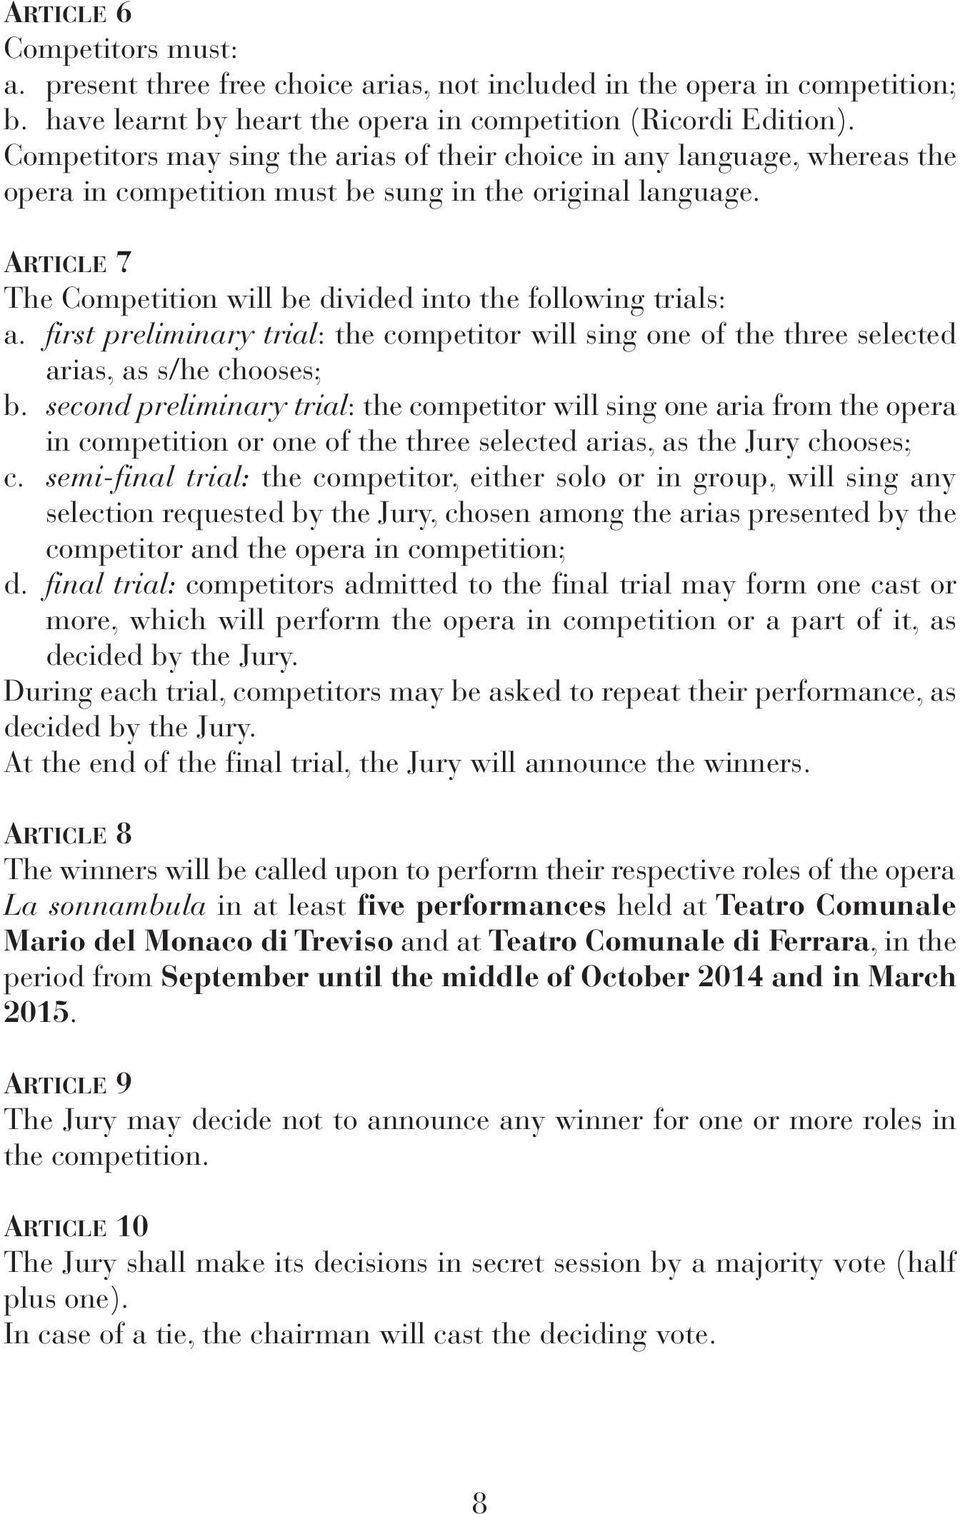 ARTiCLe 7 The Competition will be divided into the following trials: a. first preliminary trial: the competitor will sing one of the three selected arias, as s/he chooses; b.